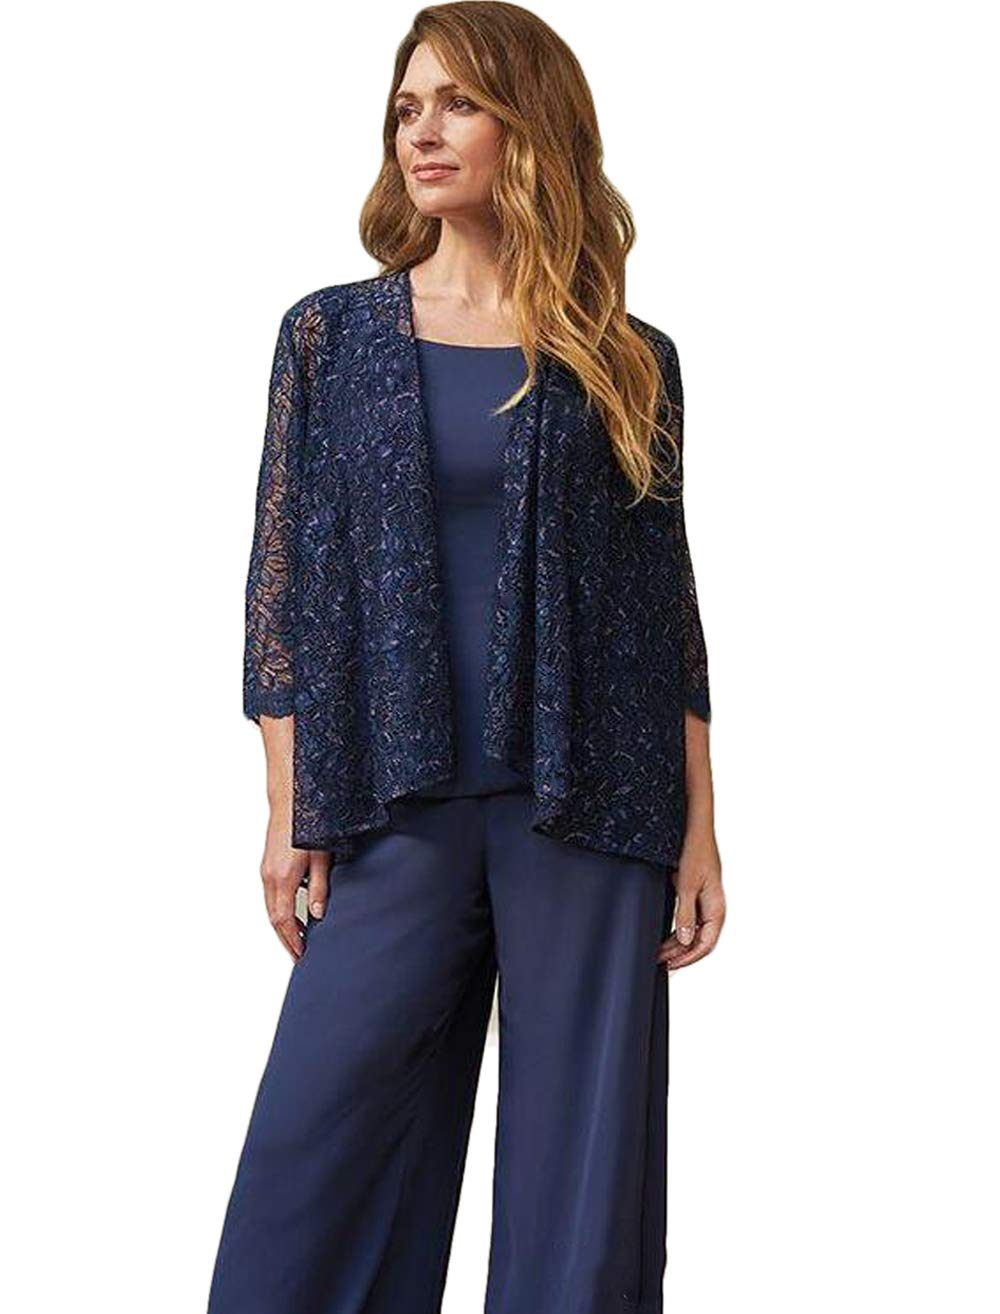 the sale of shoes how to buy on sale The Peachess Mother of The Bride Pant Suits Jewel Neck Chiffon Plus Size  Long Sleeve Wedding Guest Dress with Jacket Navy